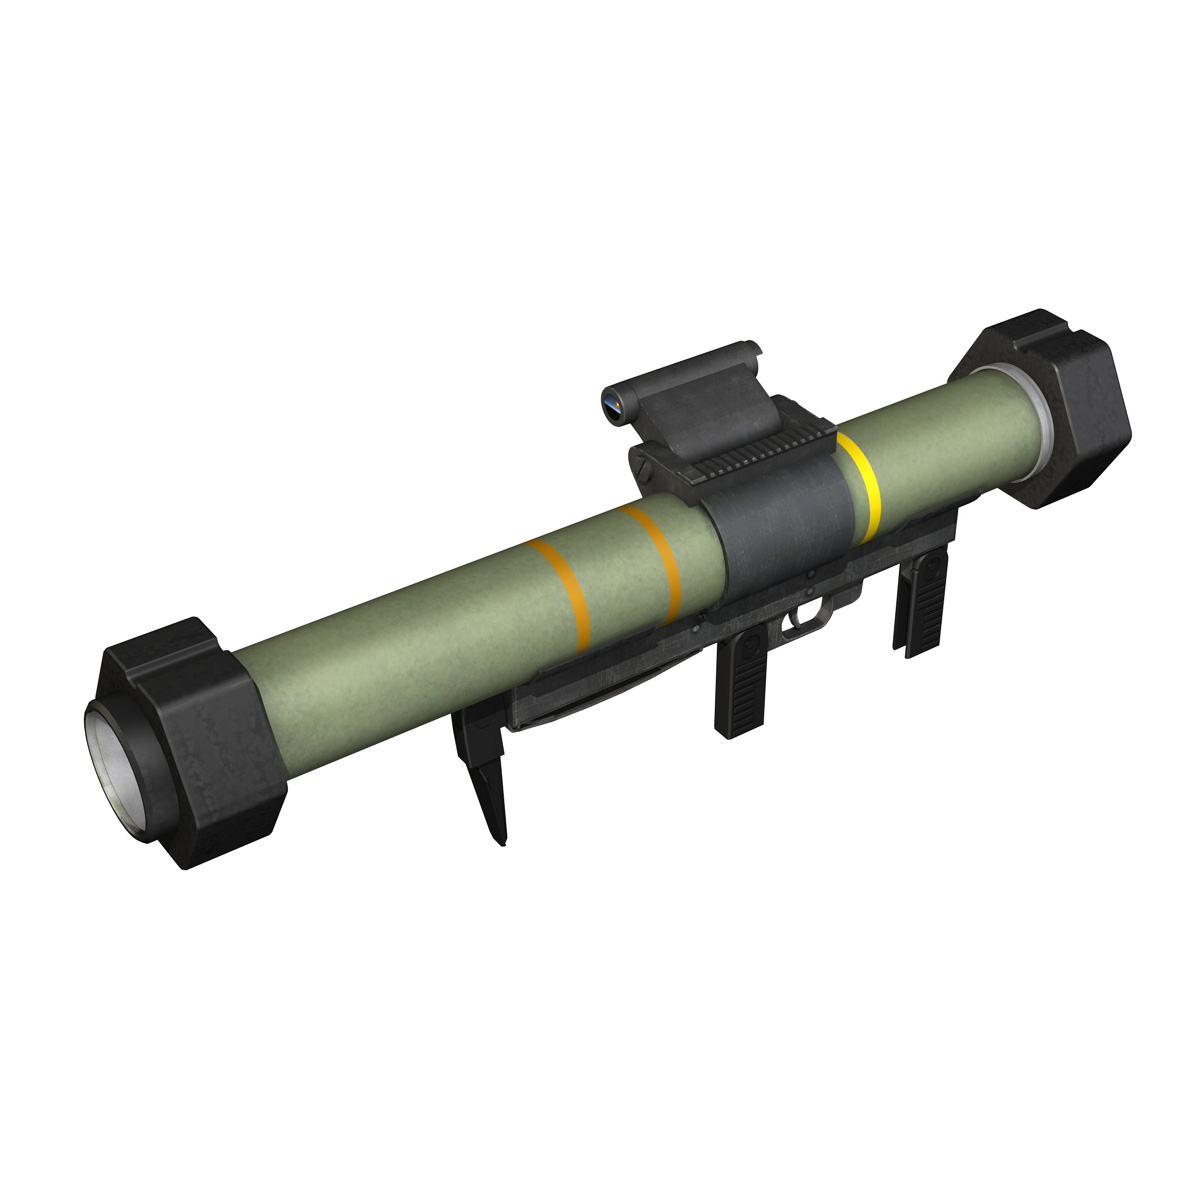 anti-armor launcher matador 3d model 3ds fbx c4d lwo obj 197072